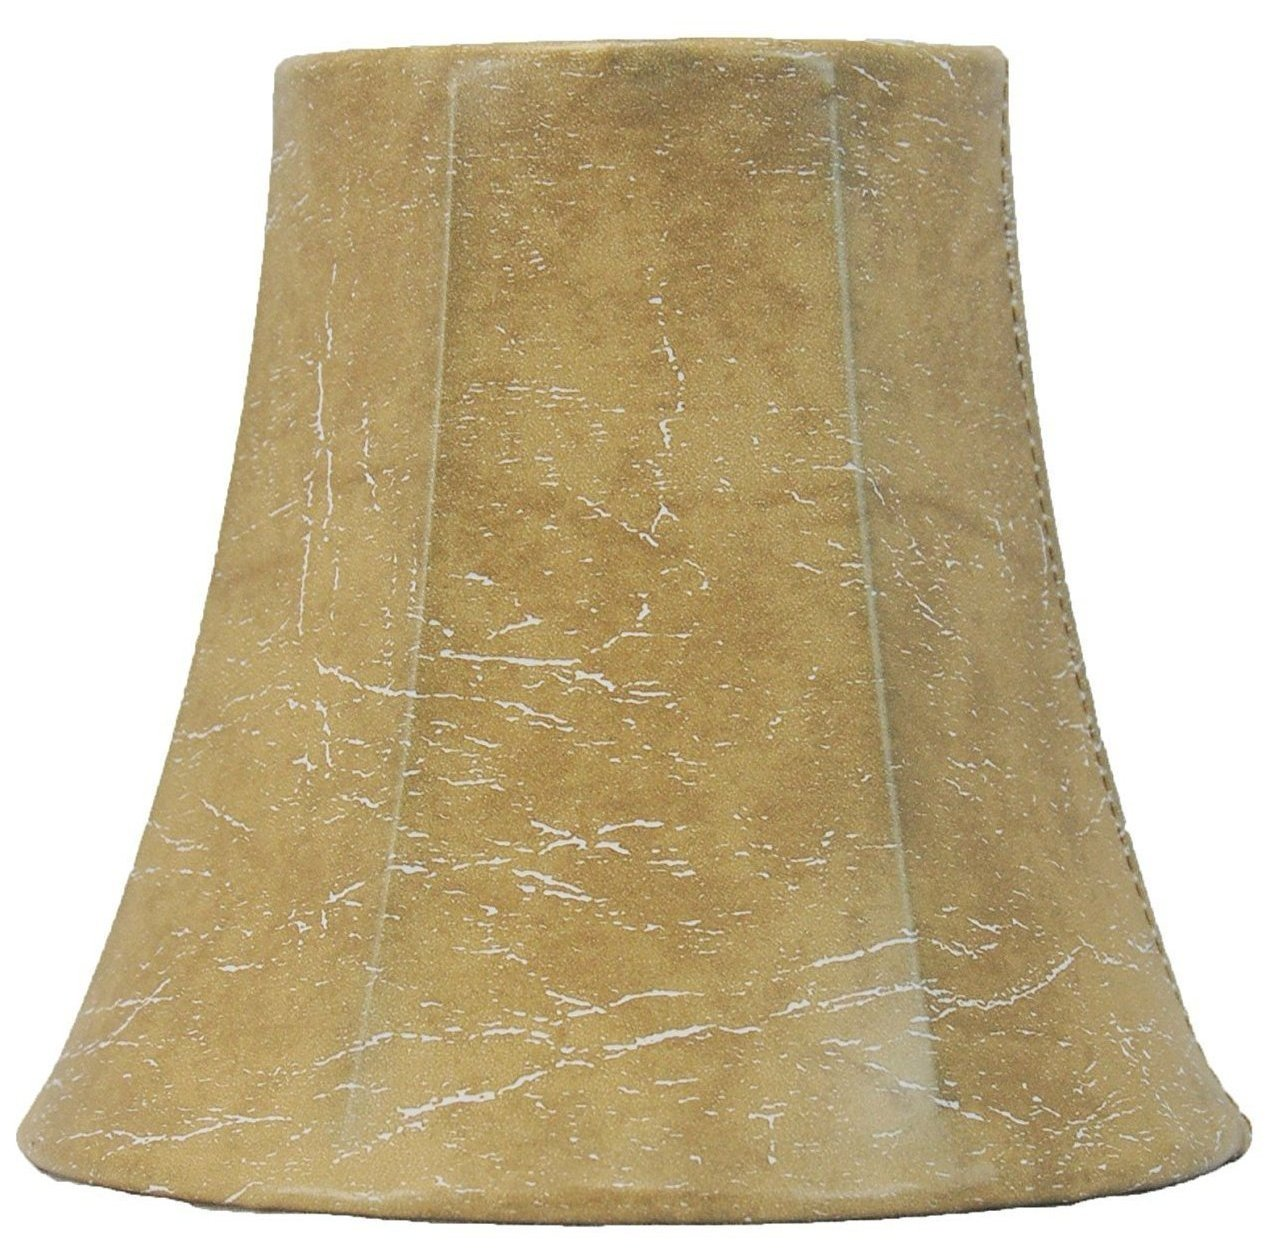 Faux leather chandelier mini lamp shade 5 and 6 sizes urbanest faux leather chandelier mini lamp shade 5 and 6 sizes arubaitofo Choice Image